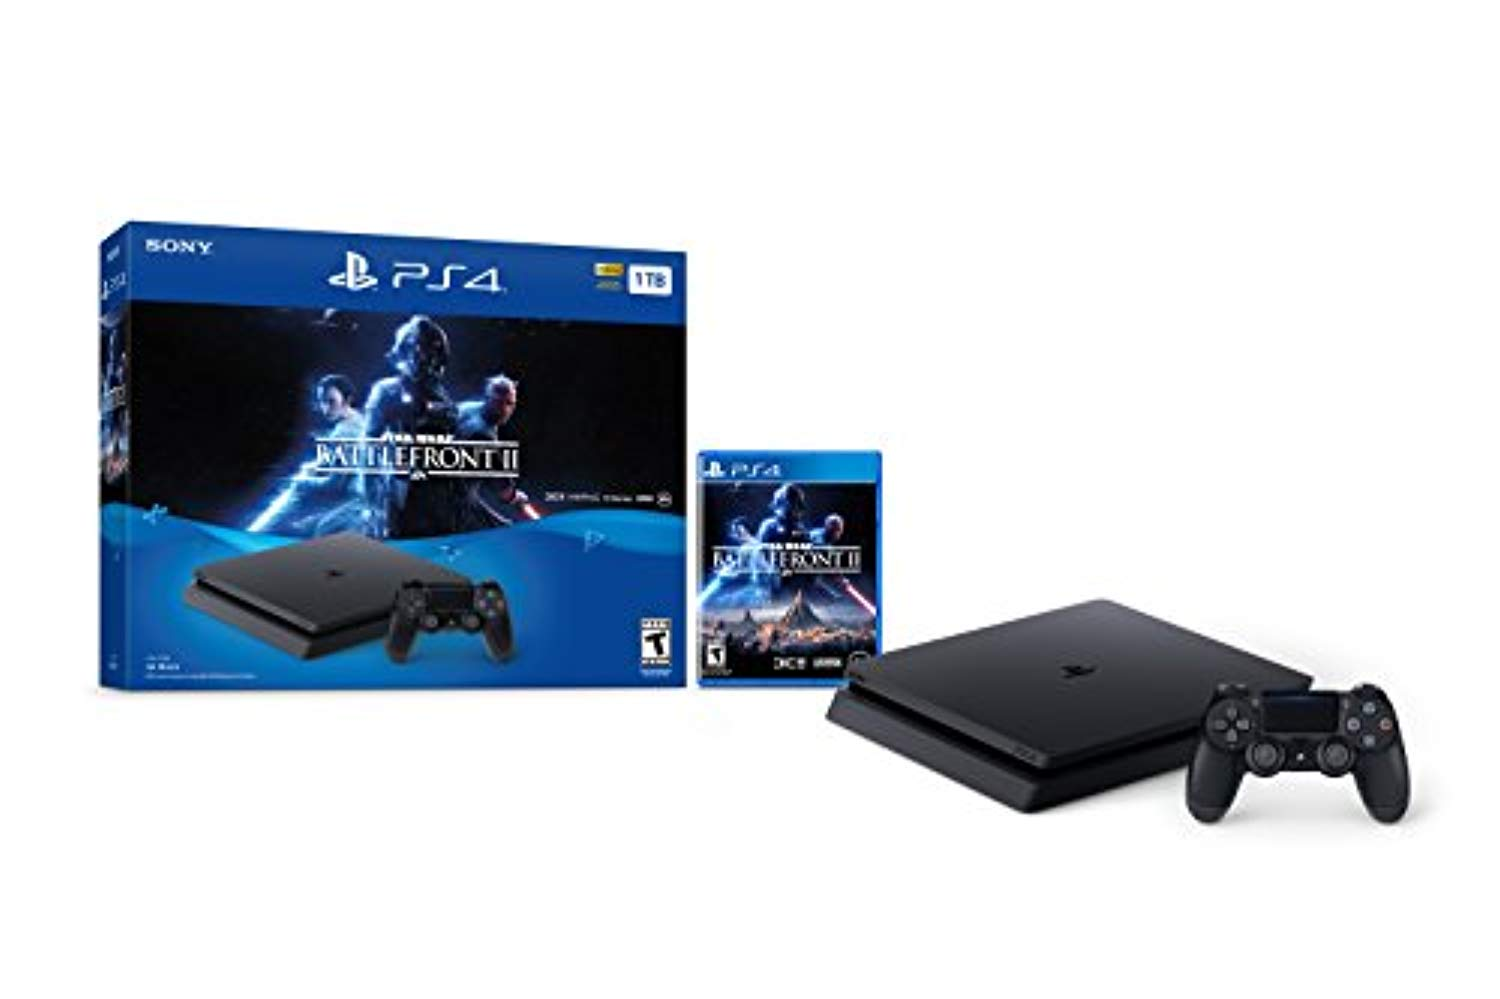 PlayStation 4 Slim 1TB Console - Star Wars Battlefront II Bundle [Discontinued]